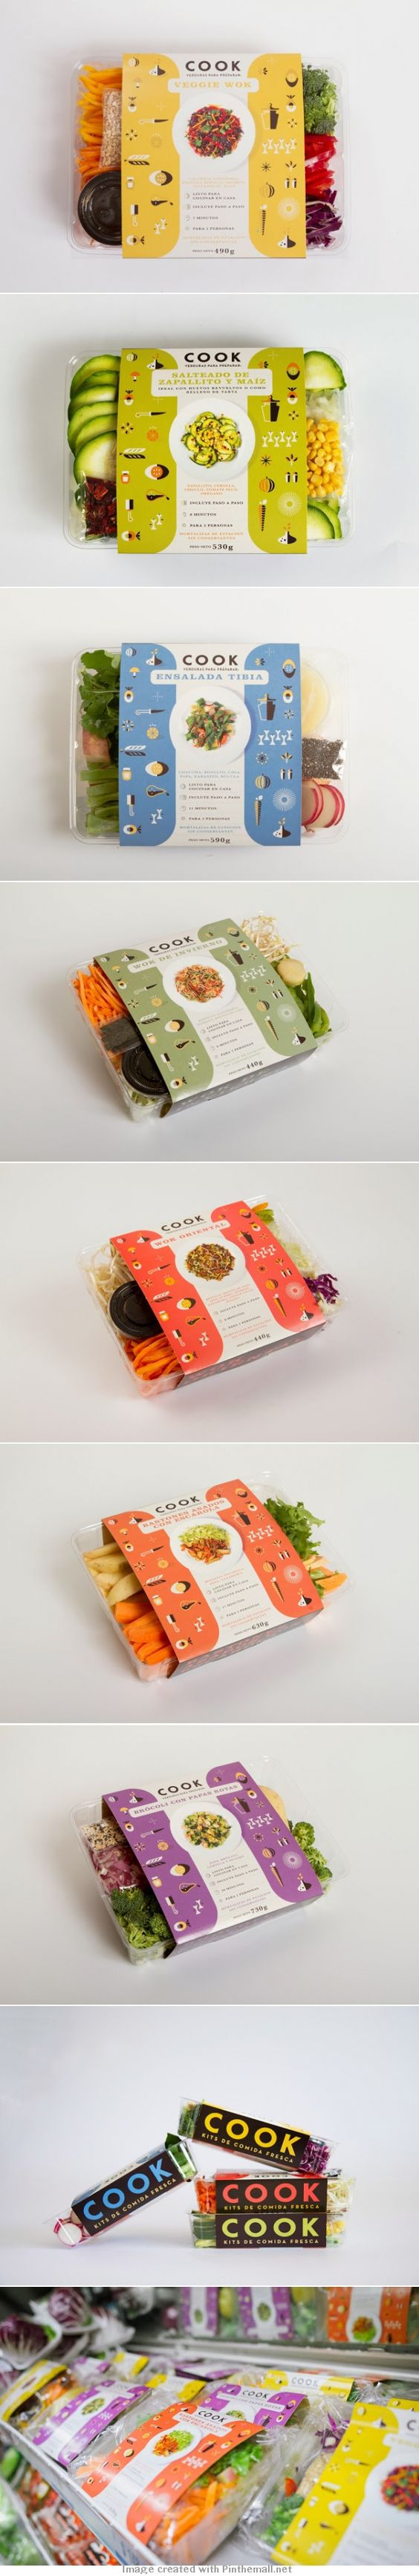 Cook yummy #packaging PD